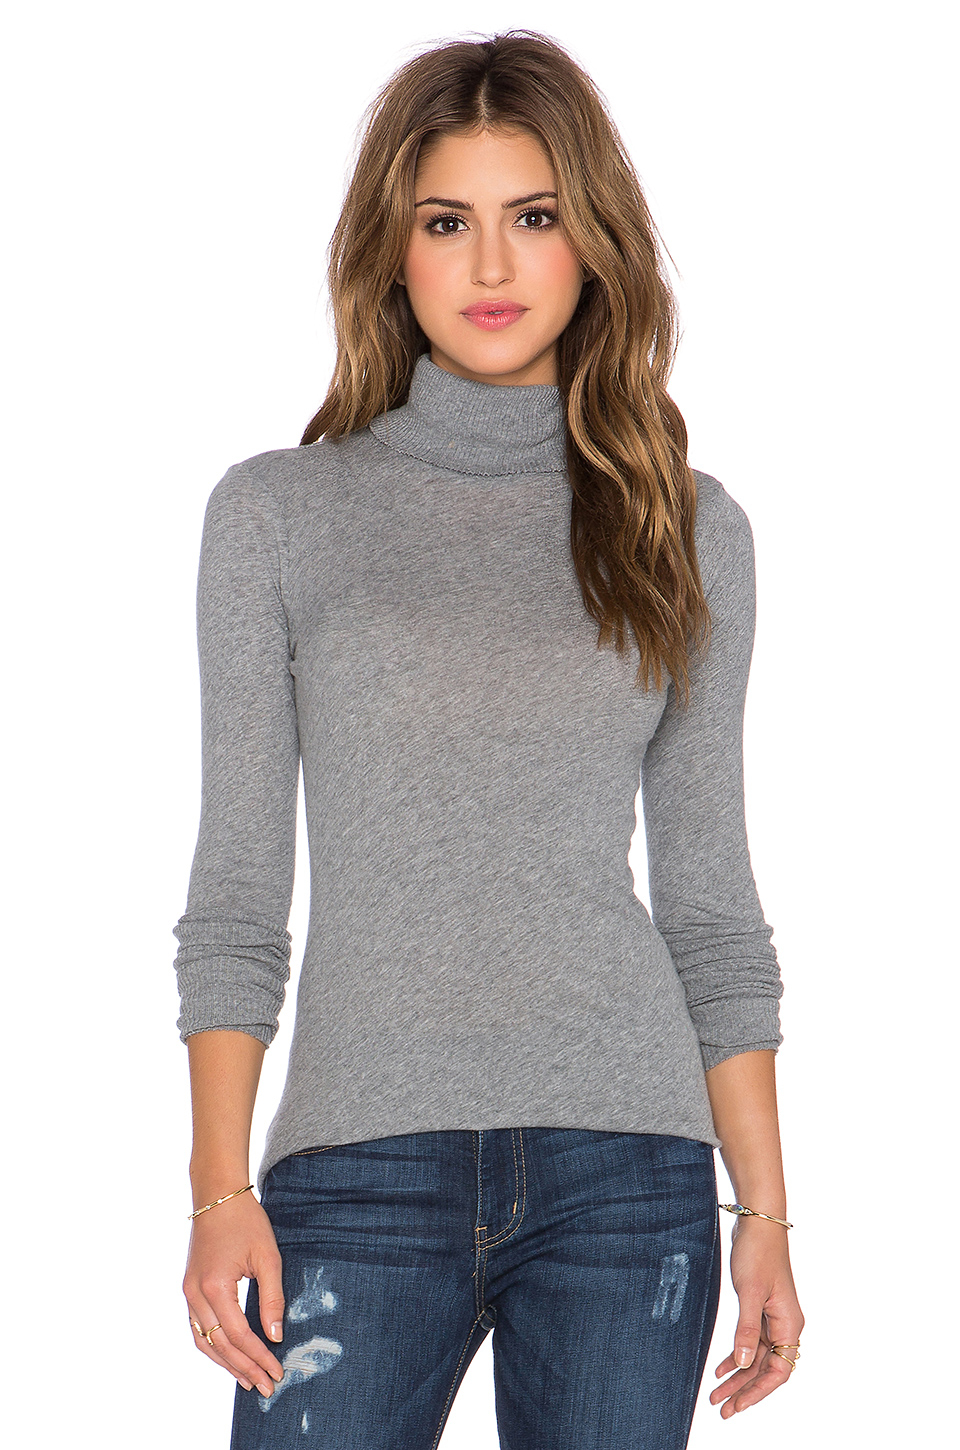 Enza costa Cashmere Long Sleeve Fitted Turtleneck in Gray | Lyst